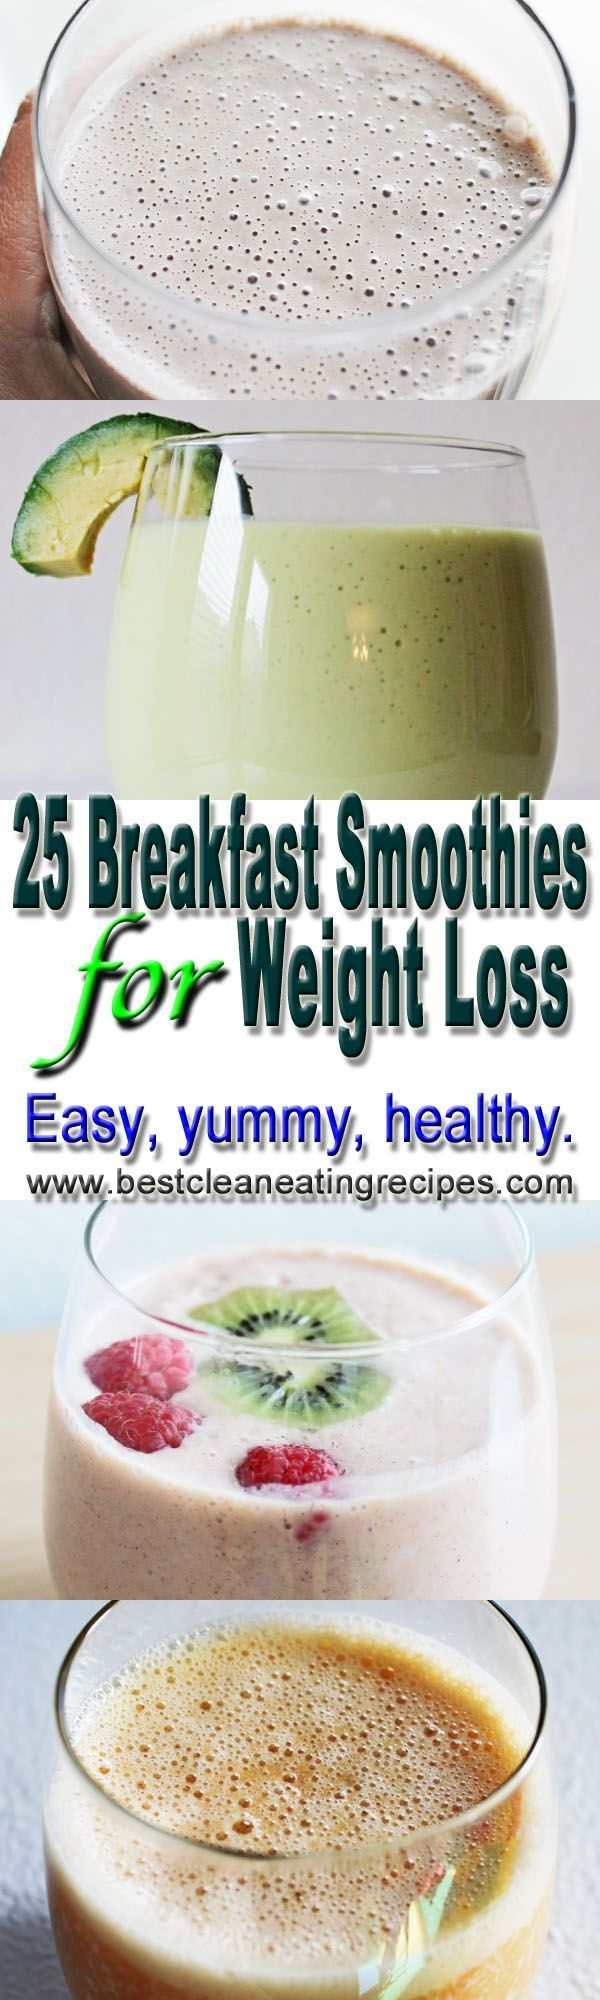 is muesli a good breakfast for weight loss